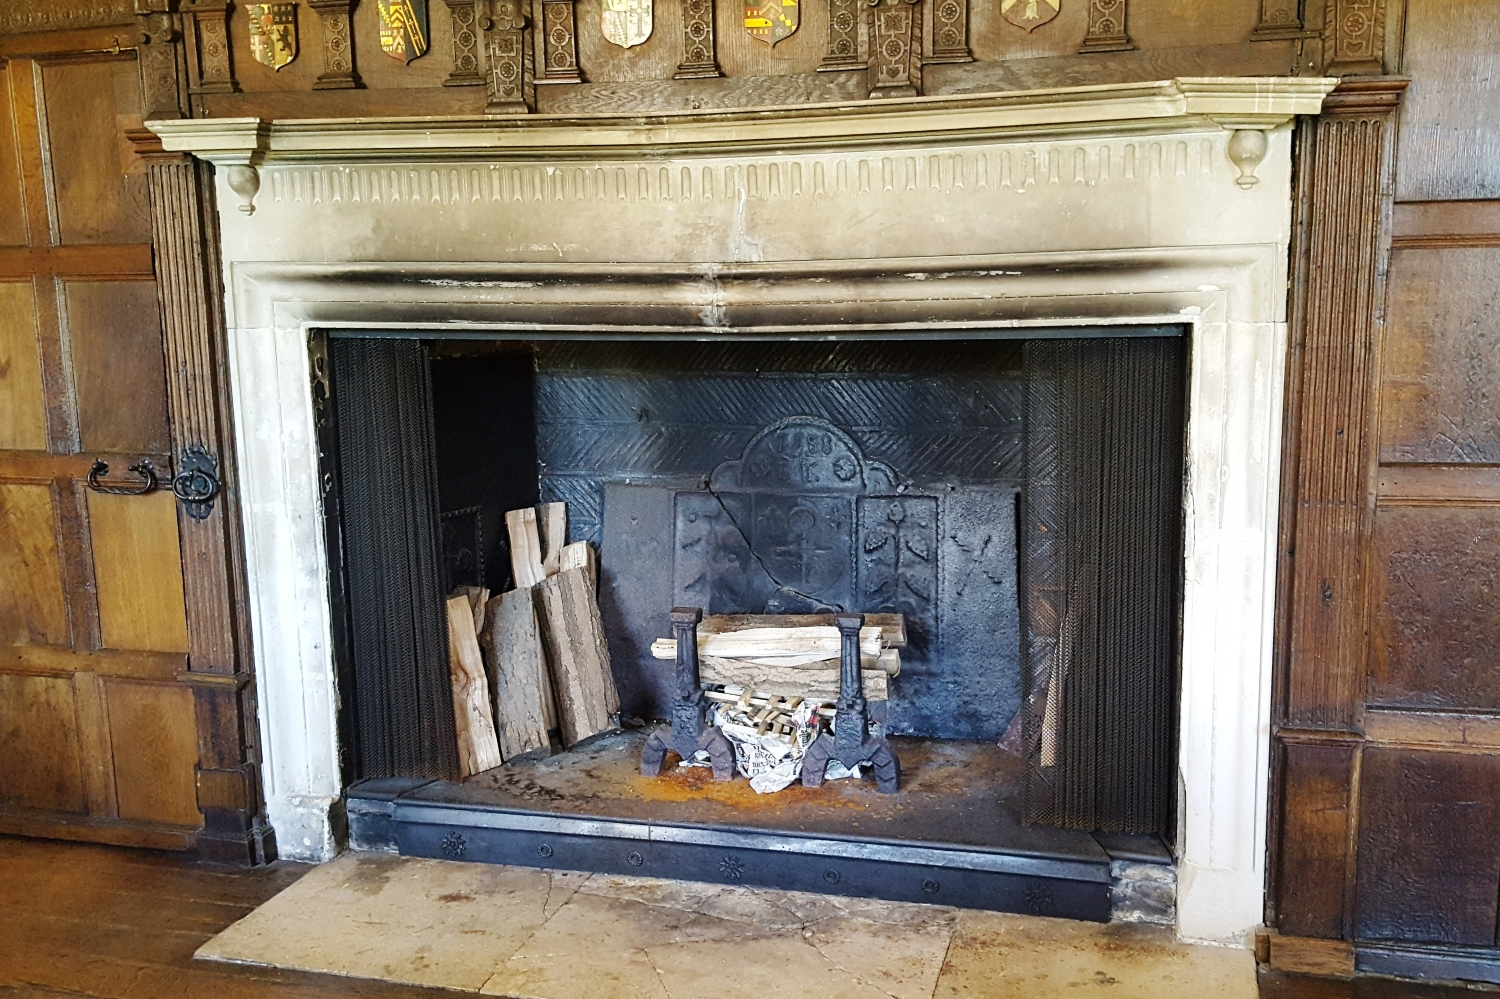 Original 1588 fire back in the Great Hall